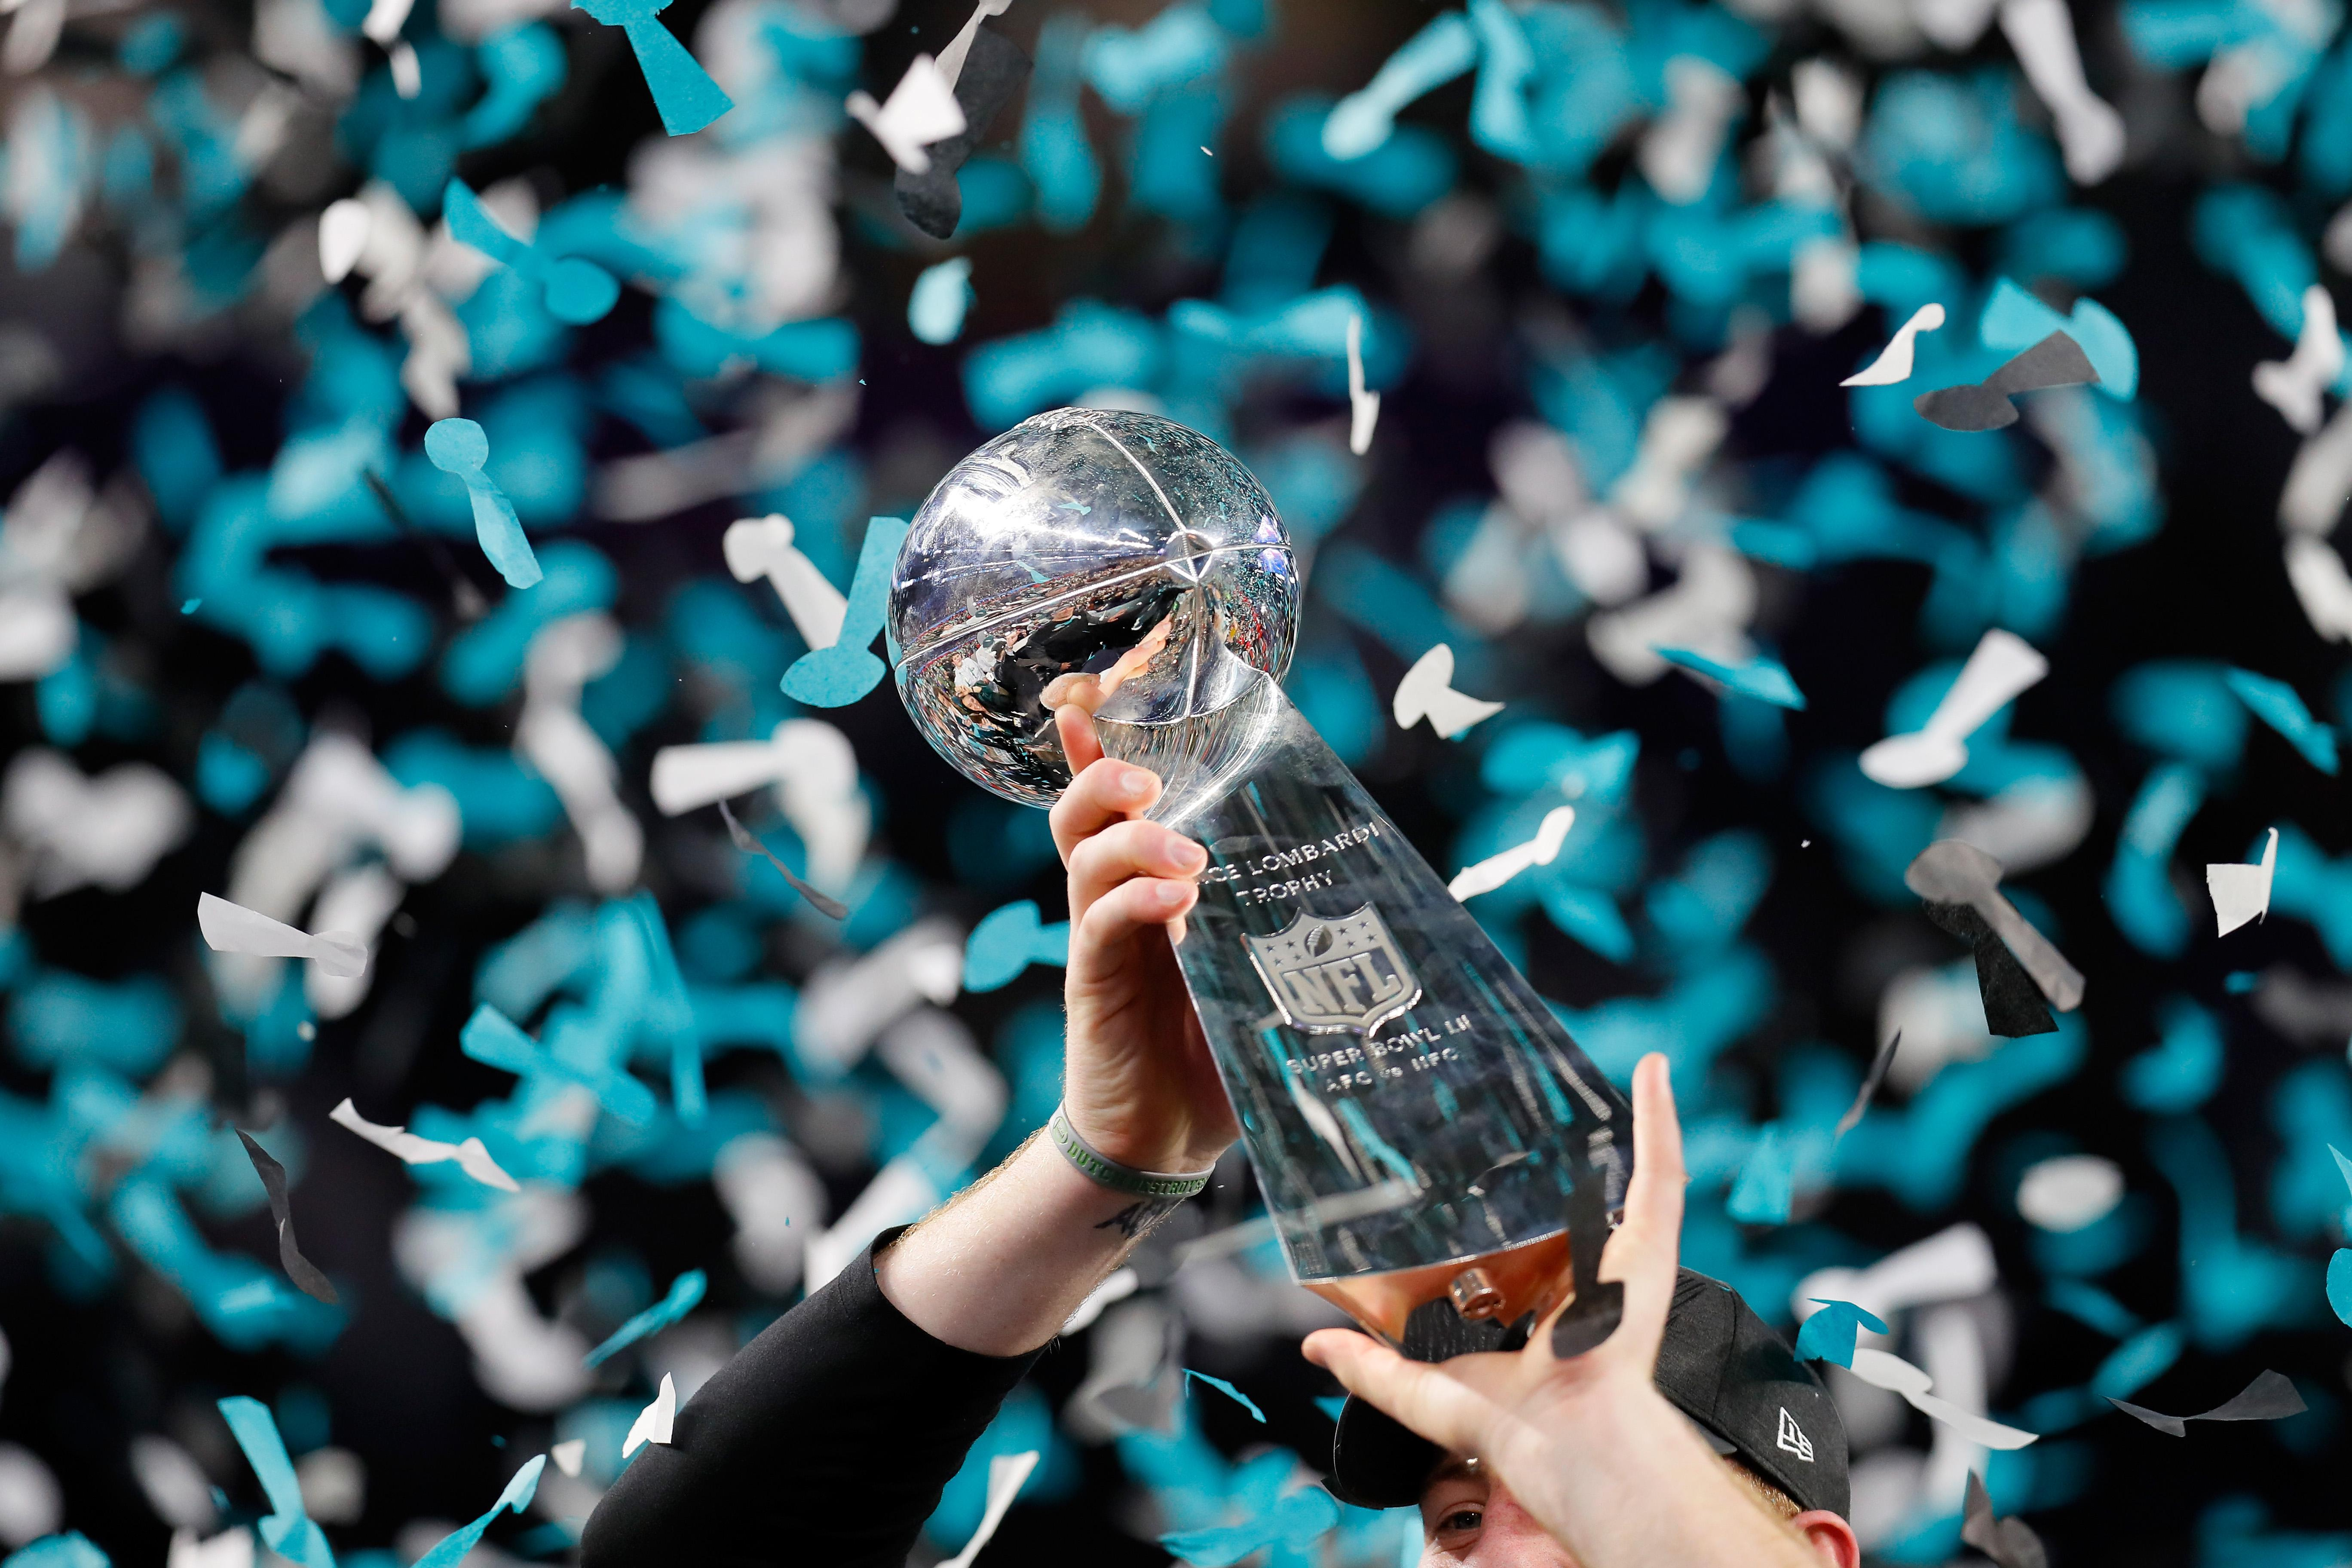 The Vince Lombardi Trophy is held in the air as confetti falls.